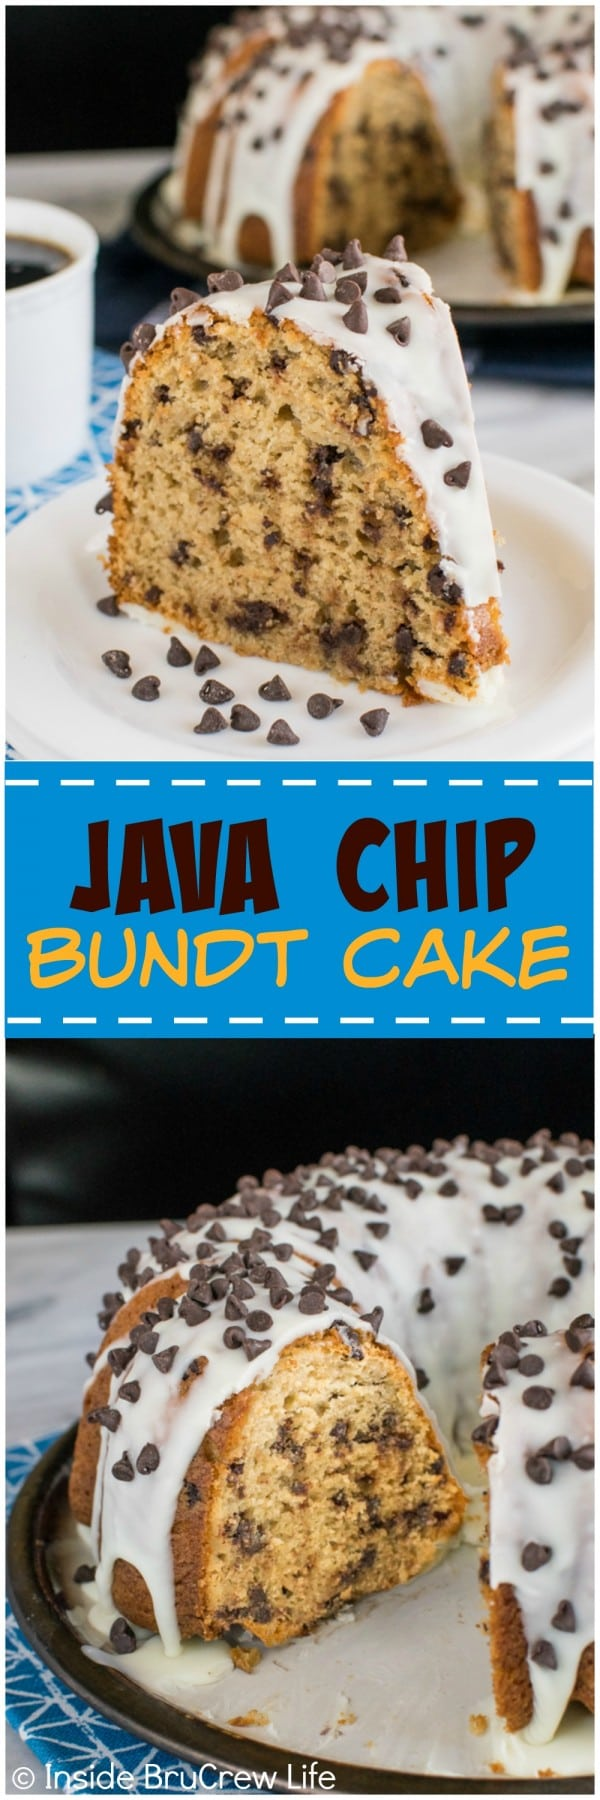 Java Chip Bundt Cake - coffee, chocolate chips, & a white chocolate glaze make this cake taste amazing. Great dessert recipe.